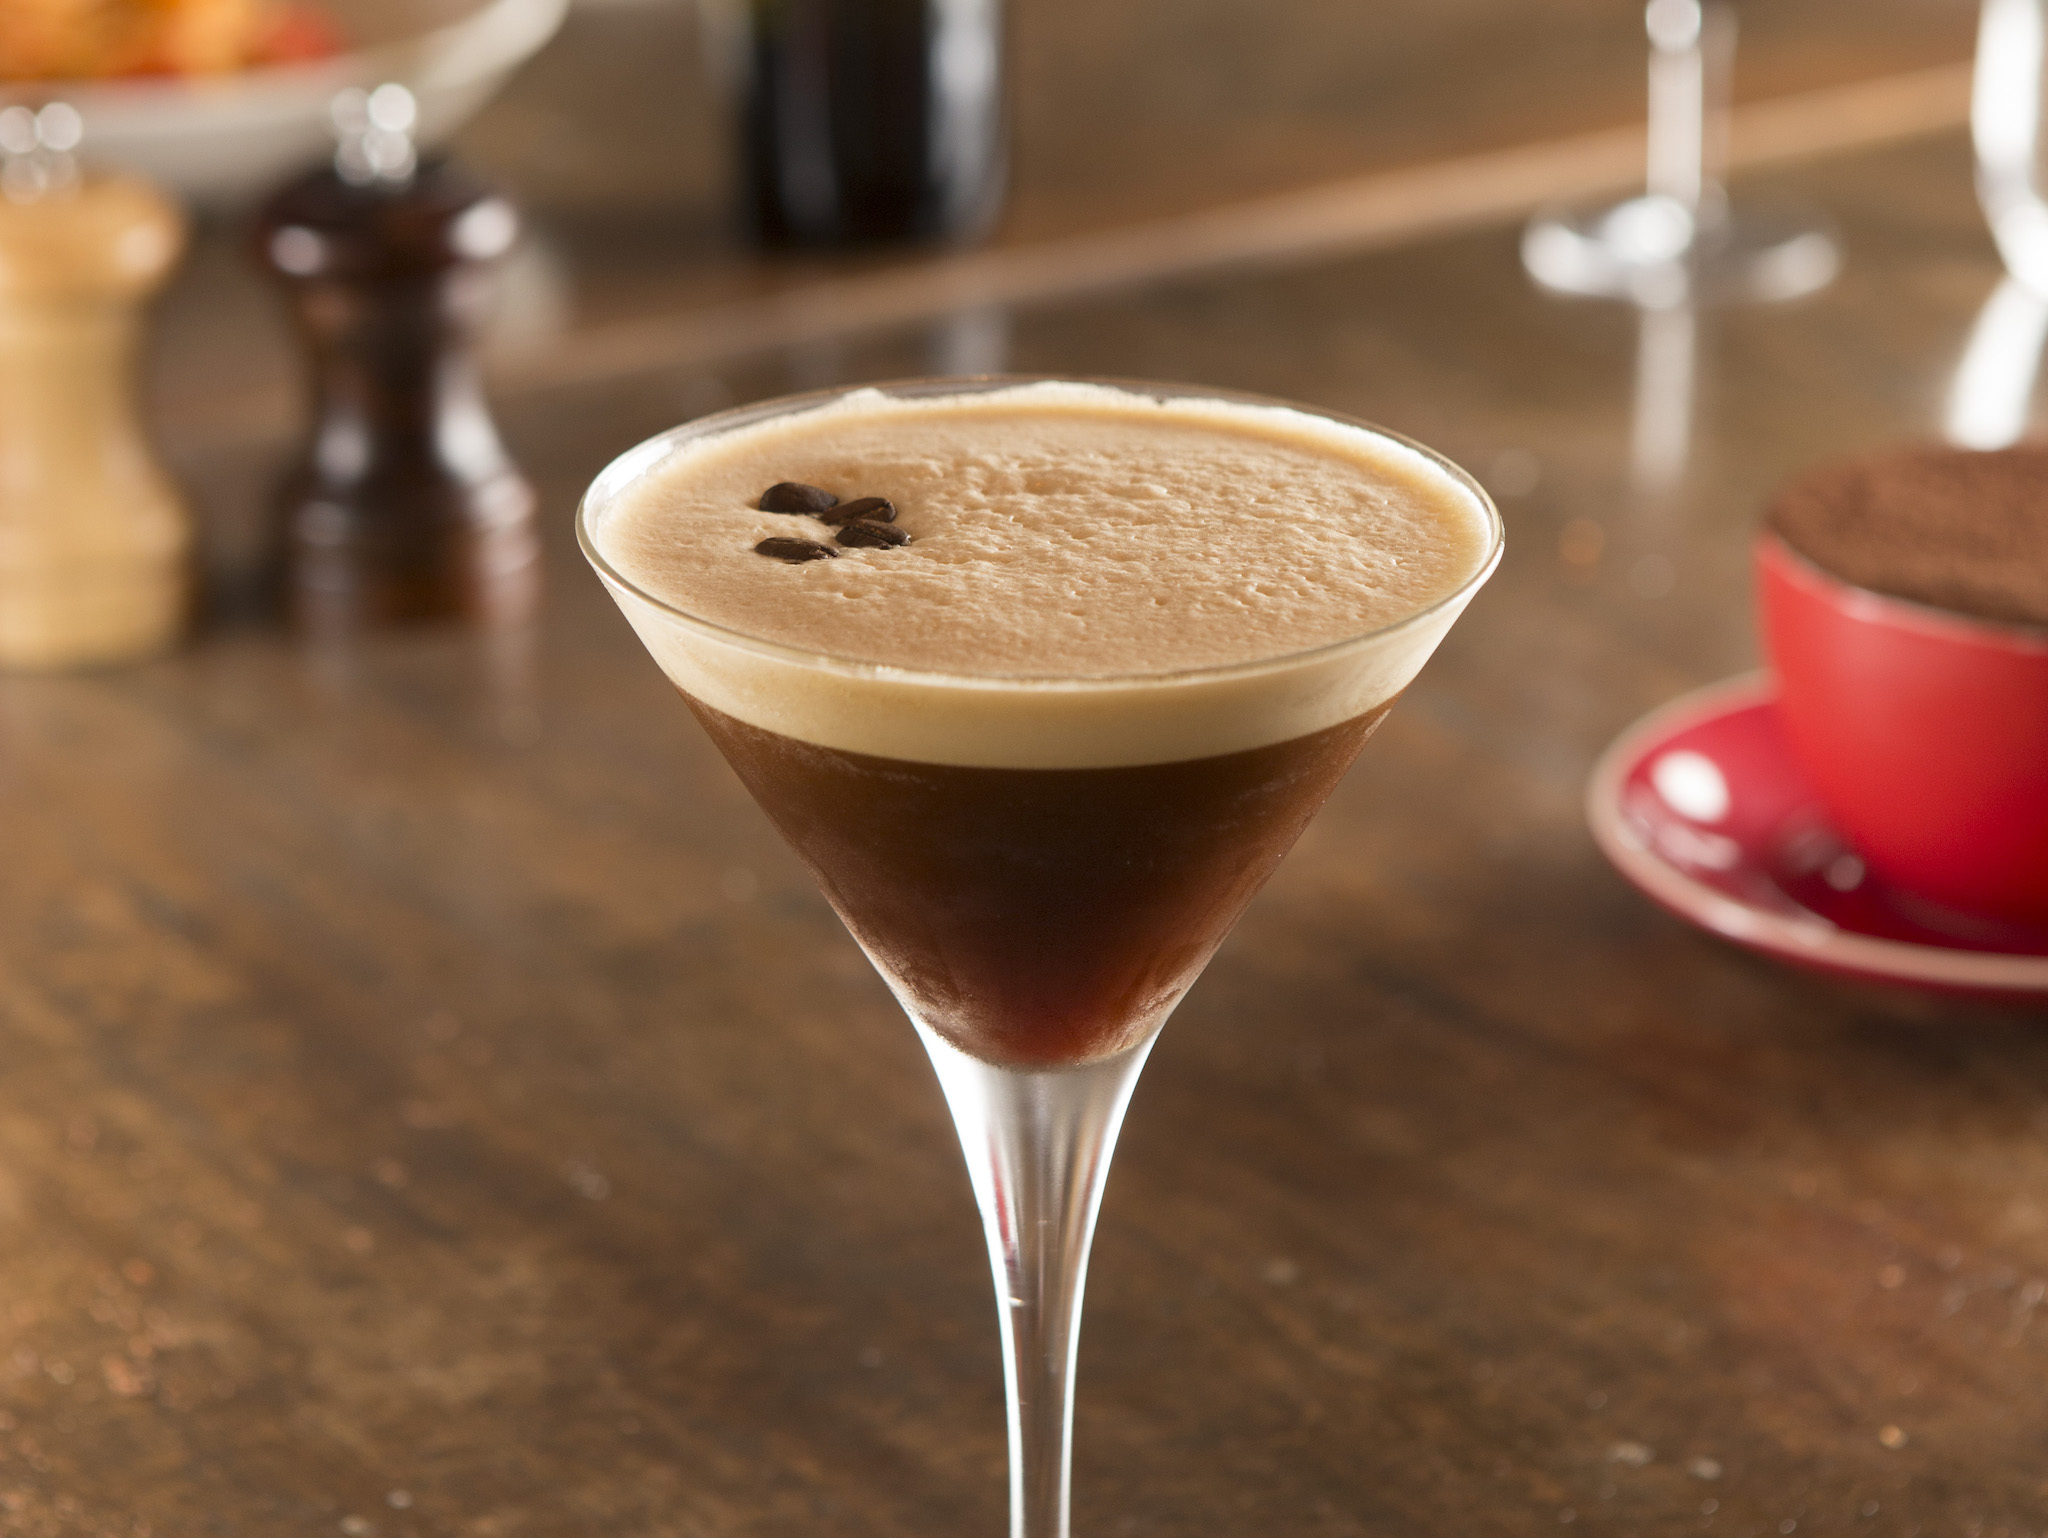 Fratelli Fresh Bridge St Espresso Martini